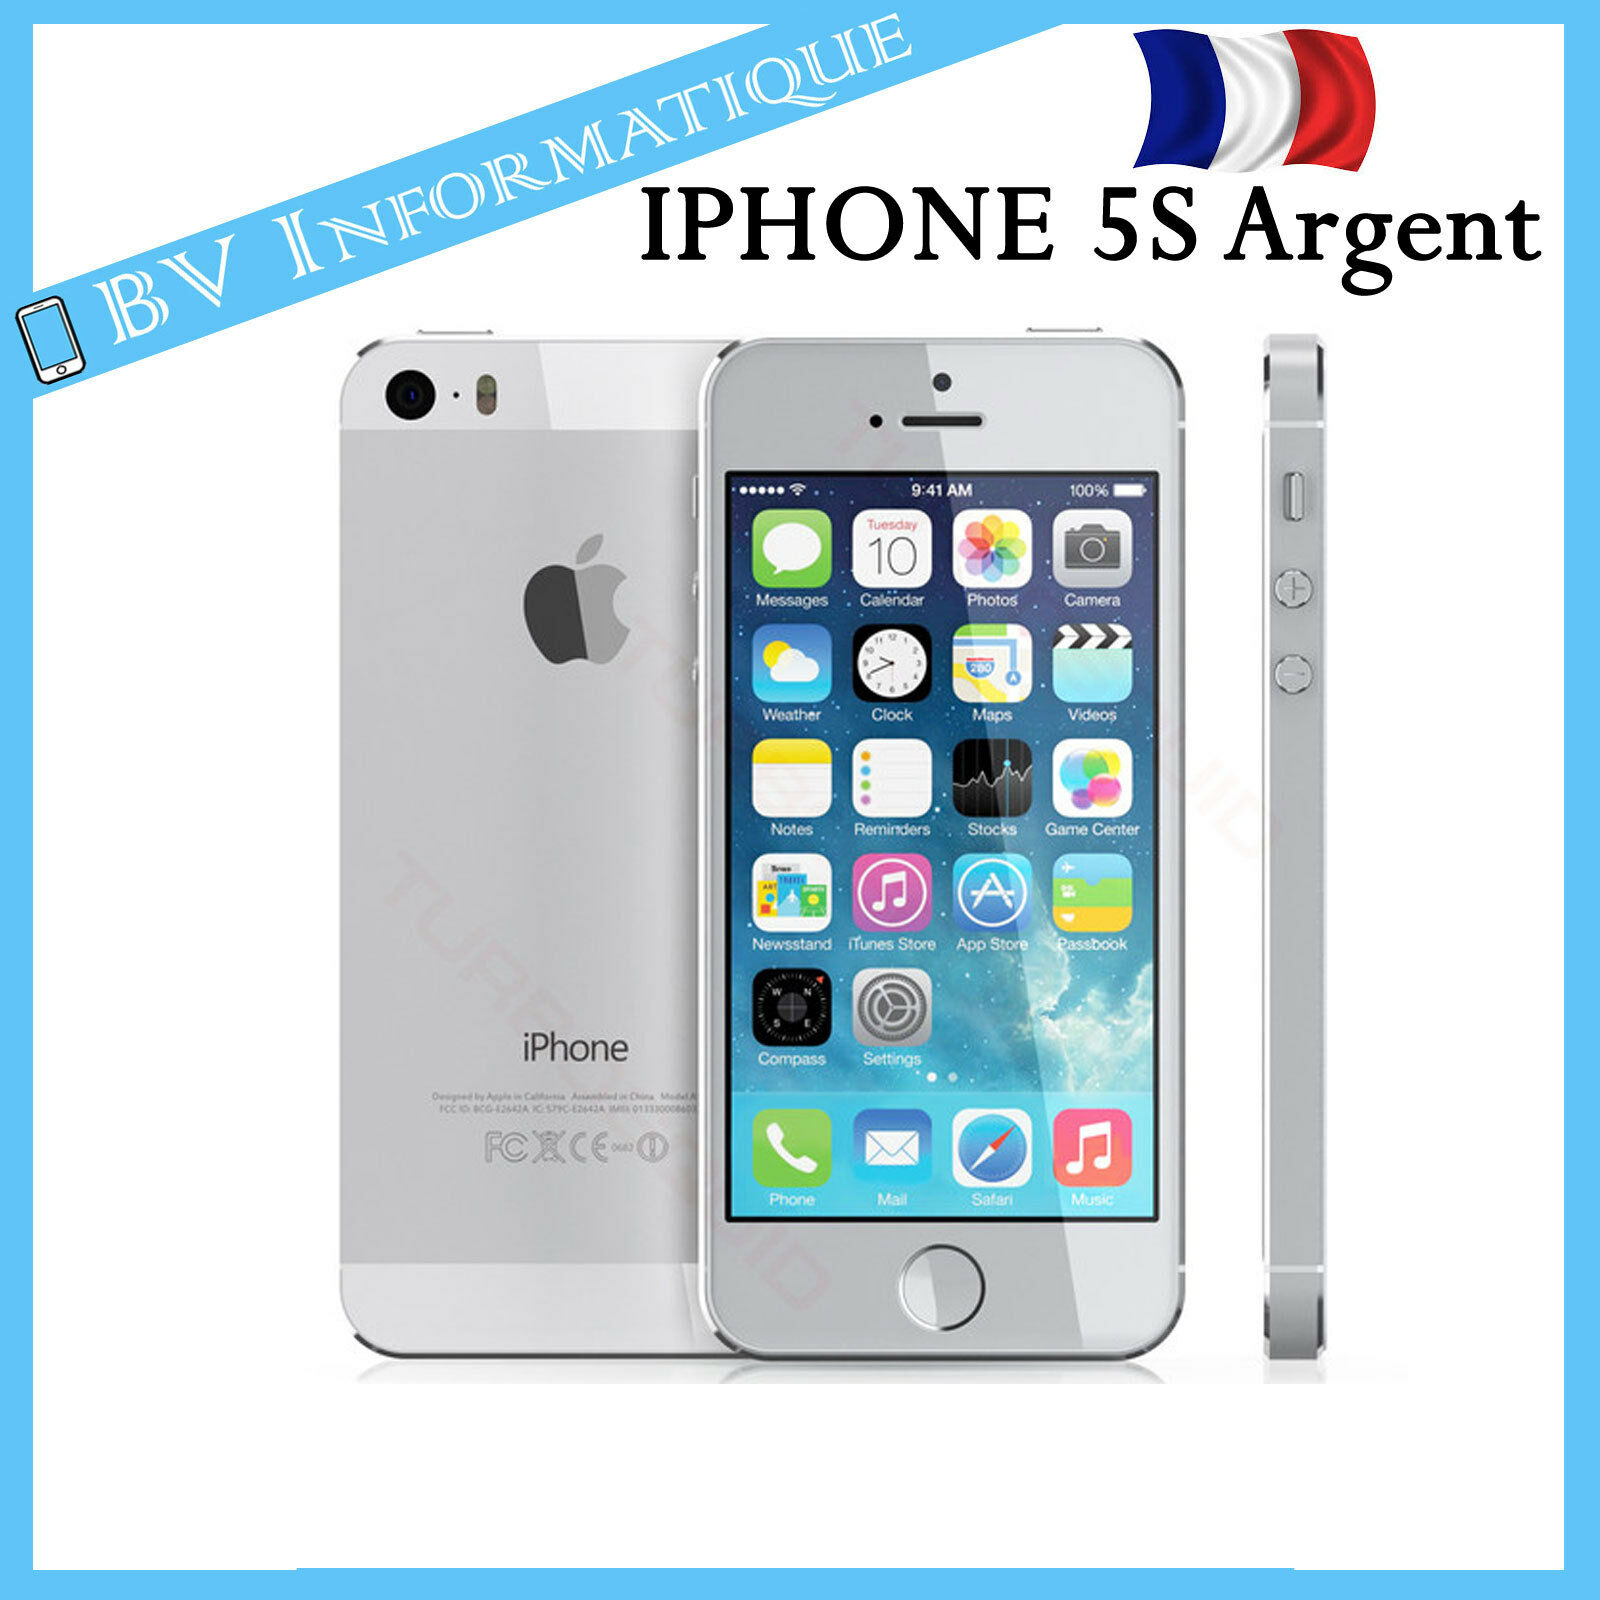 apple iphone 5s 16 go argent d bloqu tout op rateur garantie 6 mois eur 179 00 picclick fr. Black Bedroom Furniture Sets. Home Design Ideas